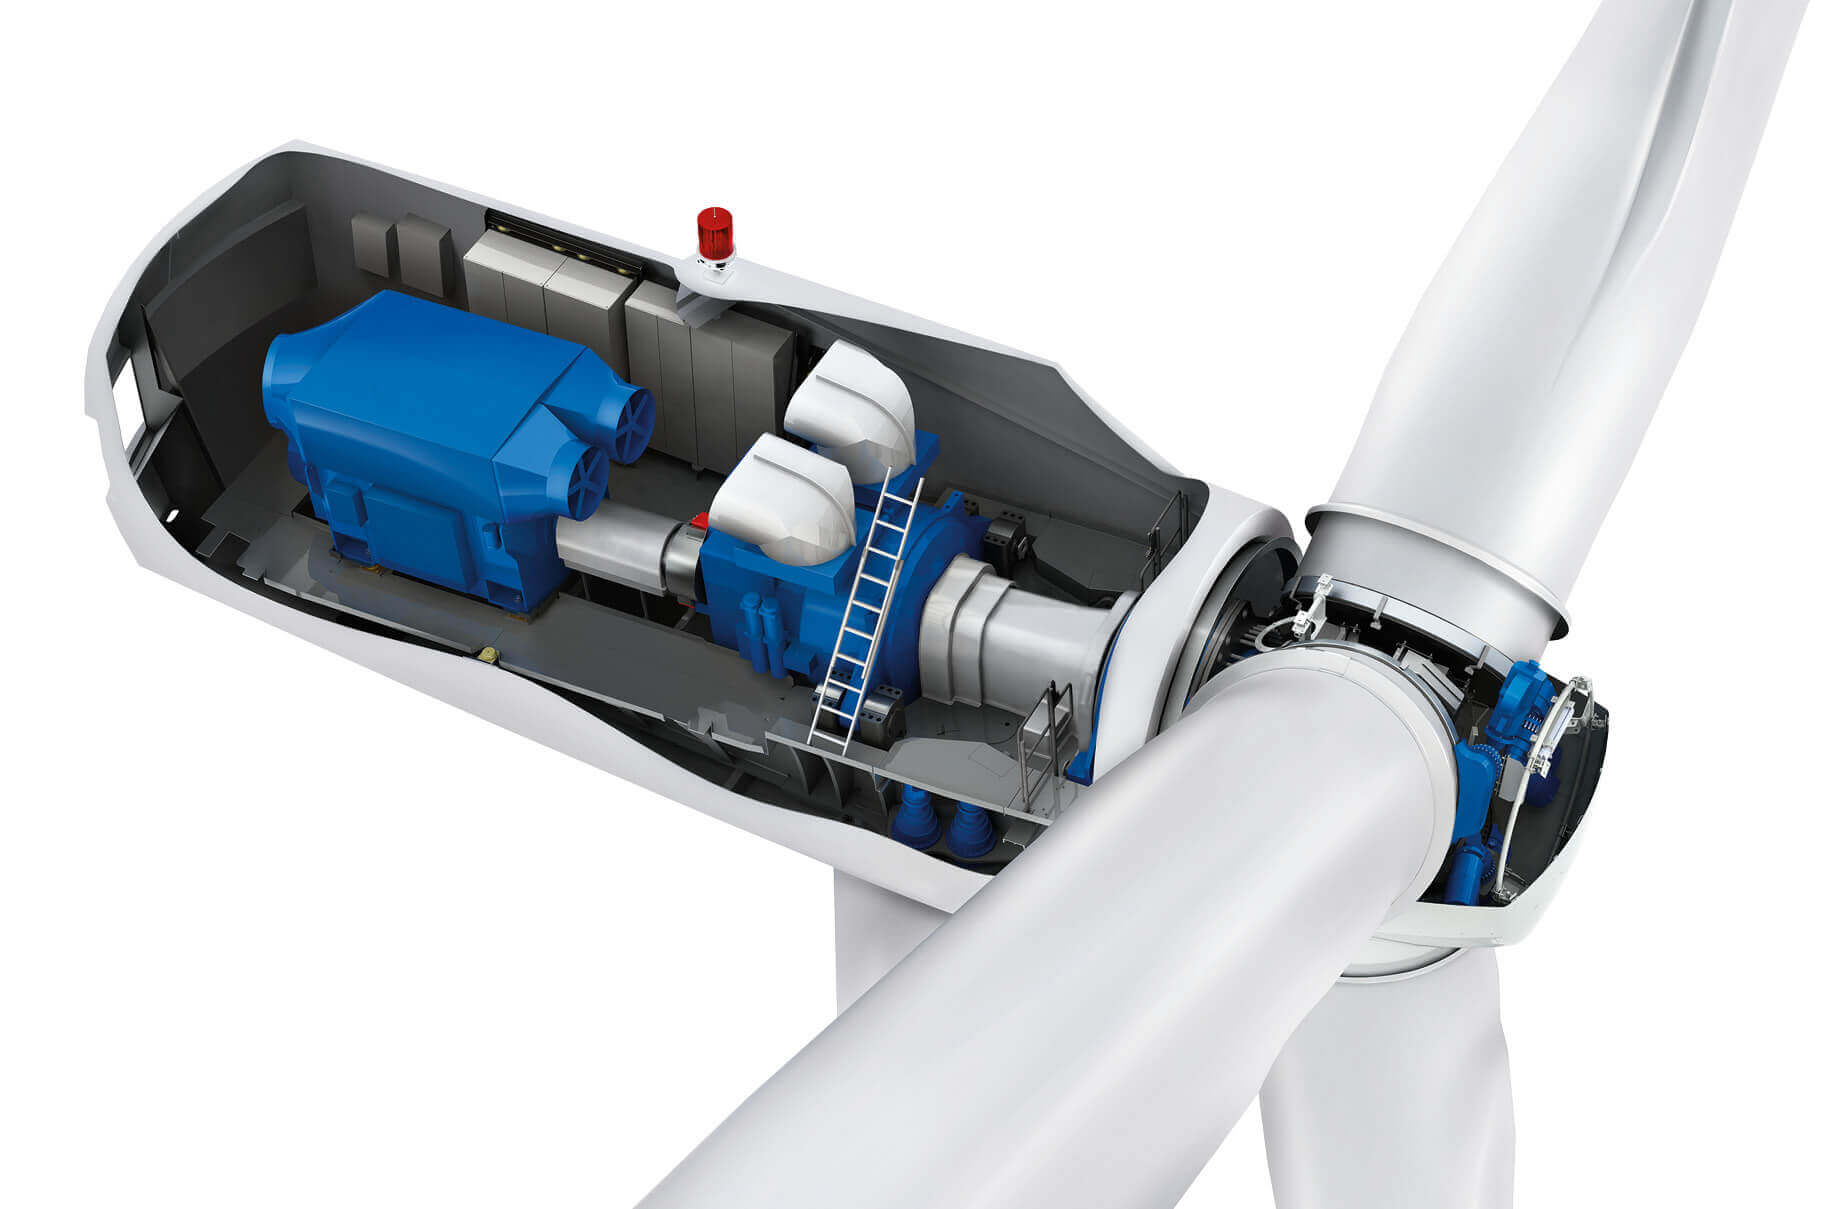 The Generator, gearbox and pitch system are solid components of wind farms.